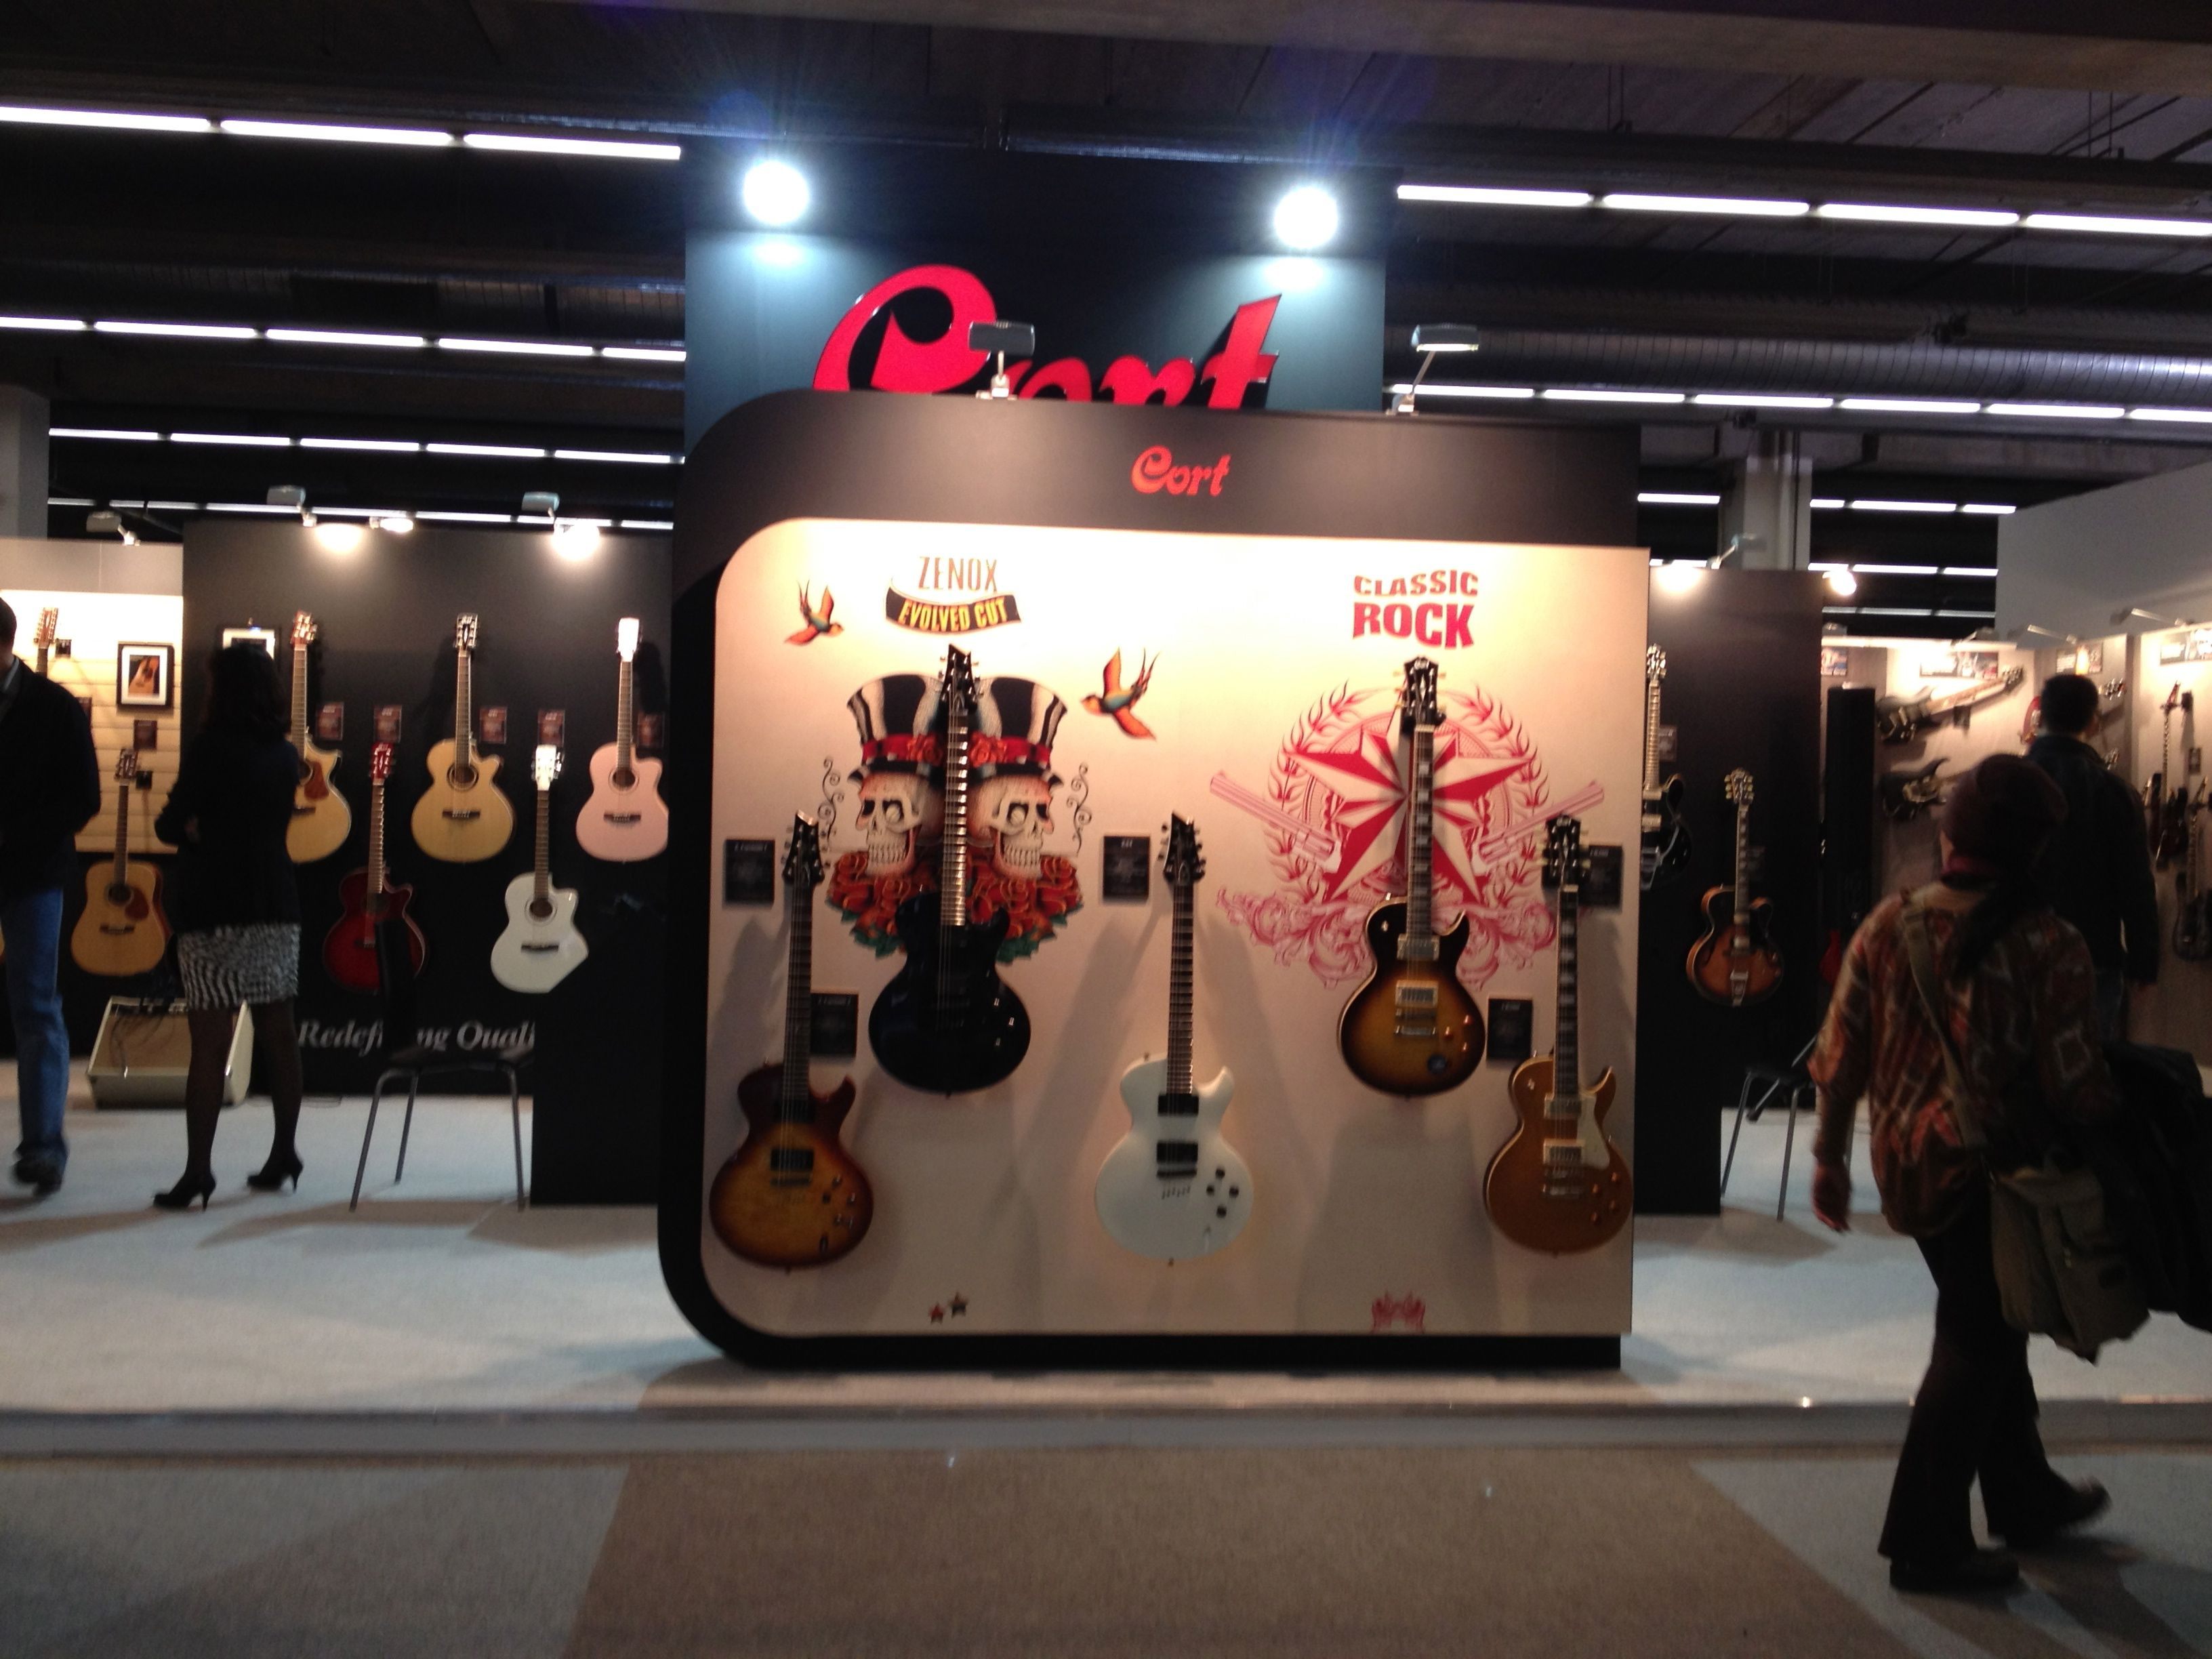 Here is a look at our booth from the Frankfurt Musikmesse musical instrument trade show in Frankfurt, Germany.